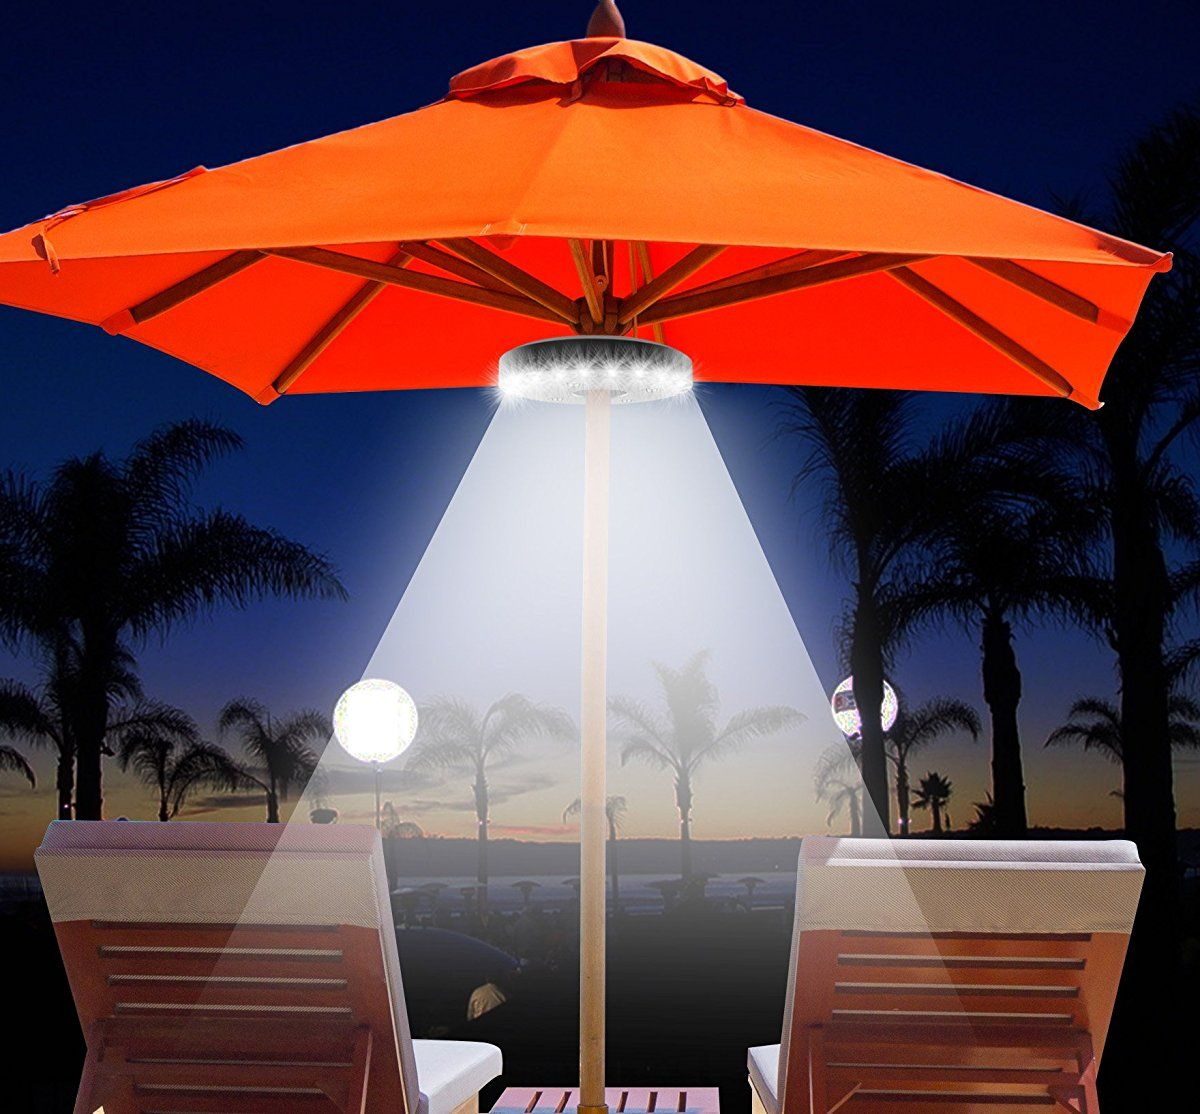 How To Use Umbrella Lights Beauteous Umbrella Pole Light For Patio Umbrellas Camping Tents Or Outdoor